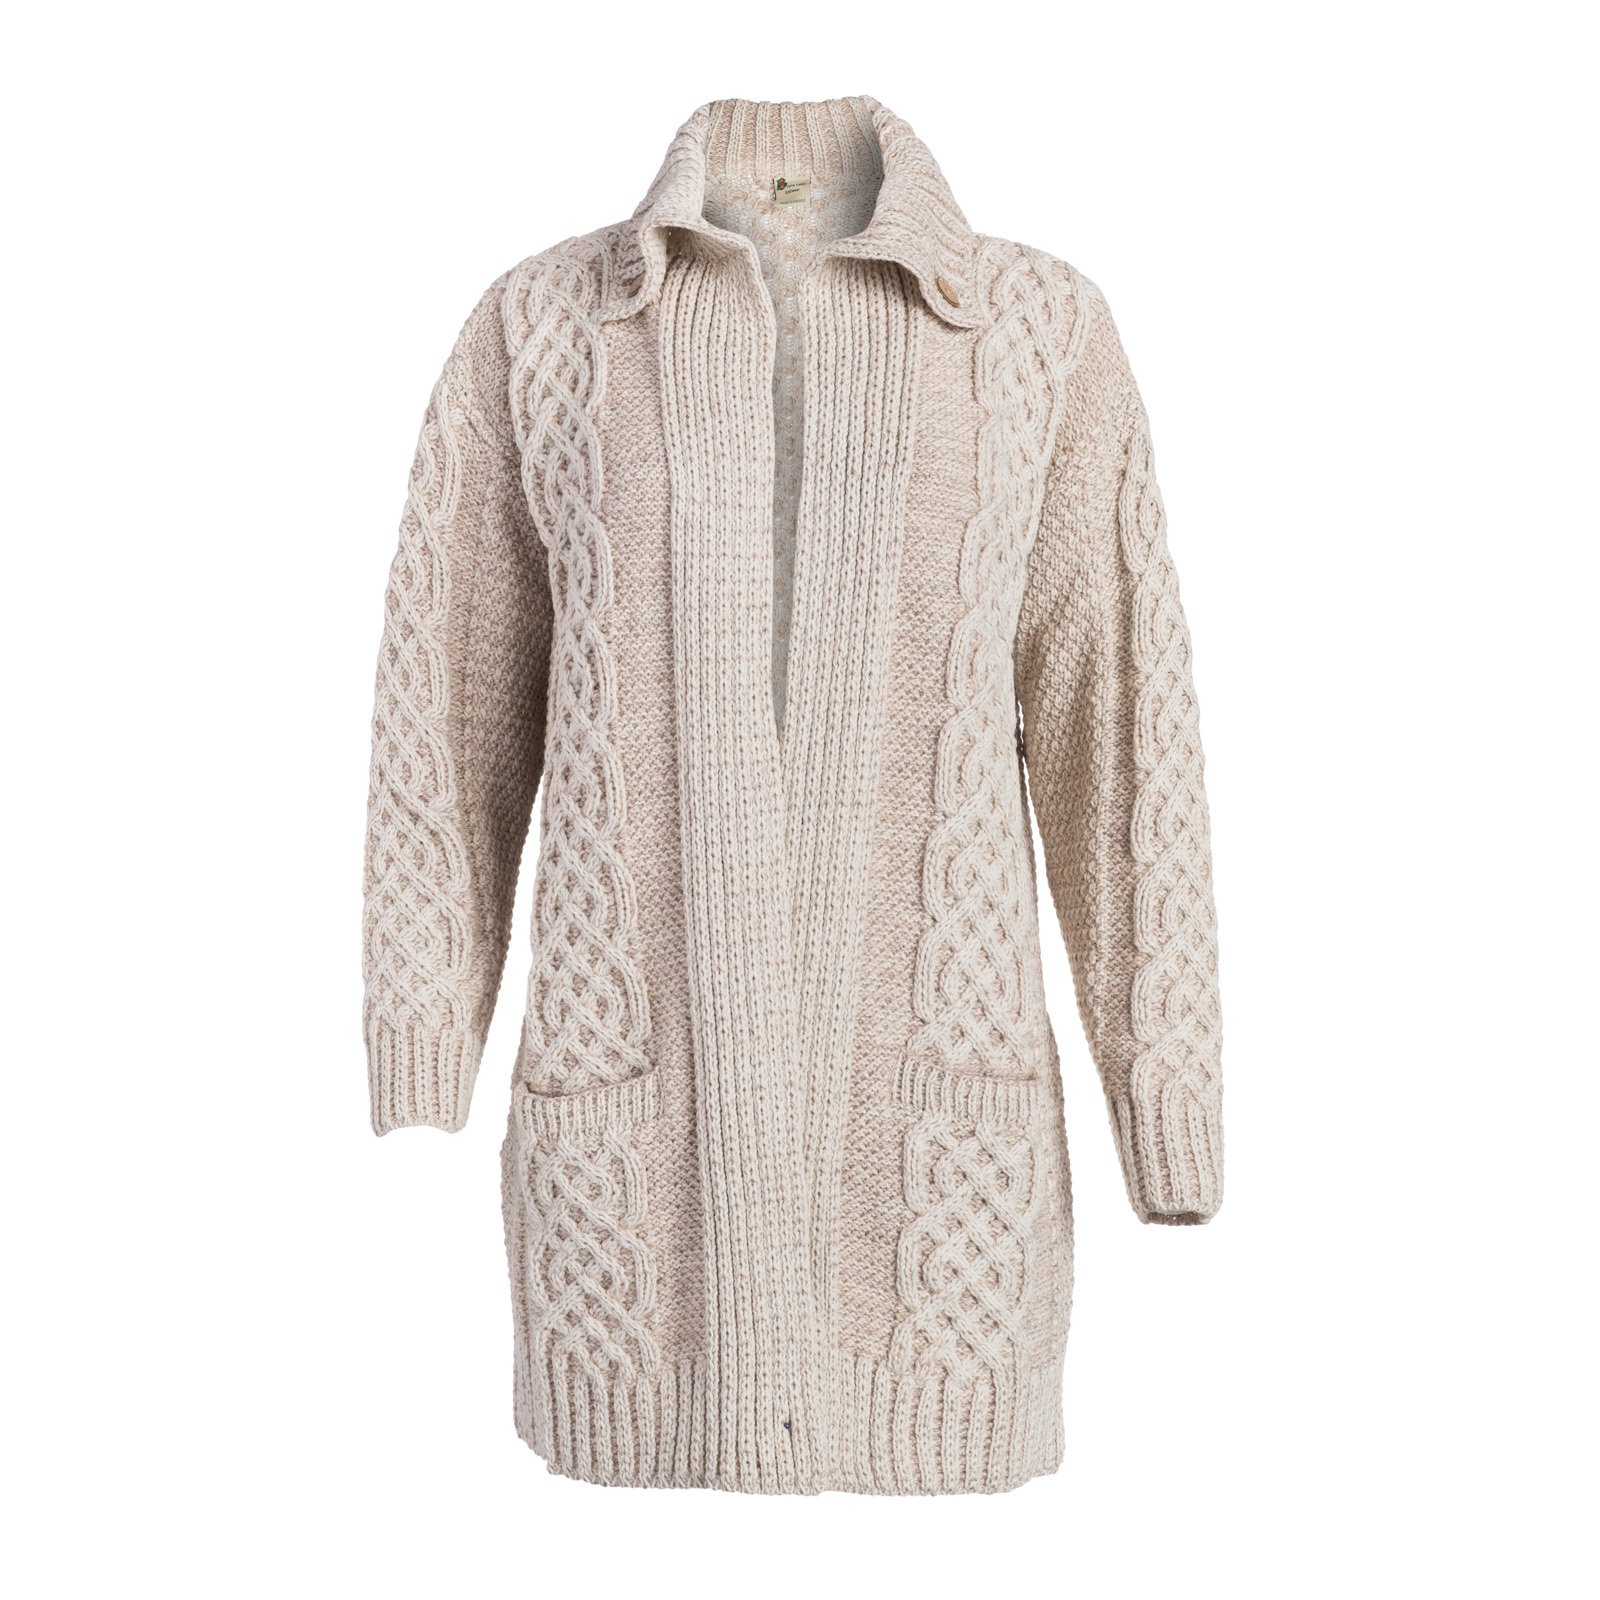 Boyne Valley Knitwear Ladies Celtic Fall Wool Cable Coat Cardigan (X-Large, White/Wicker)